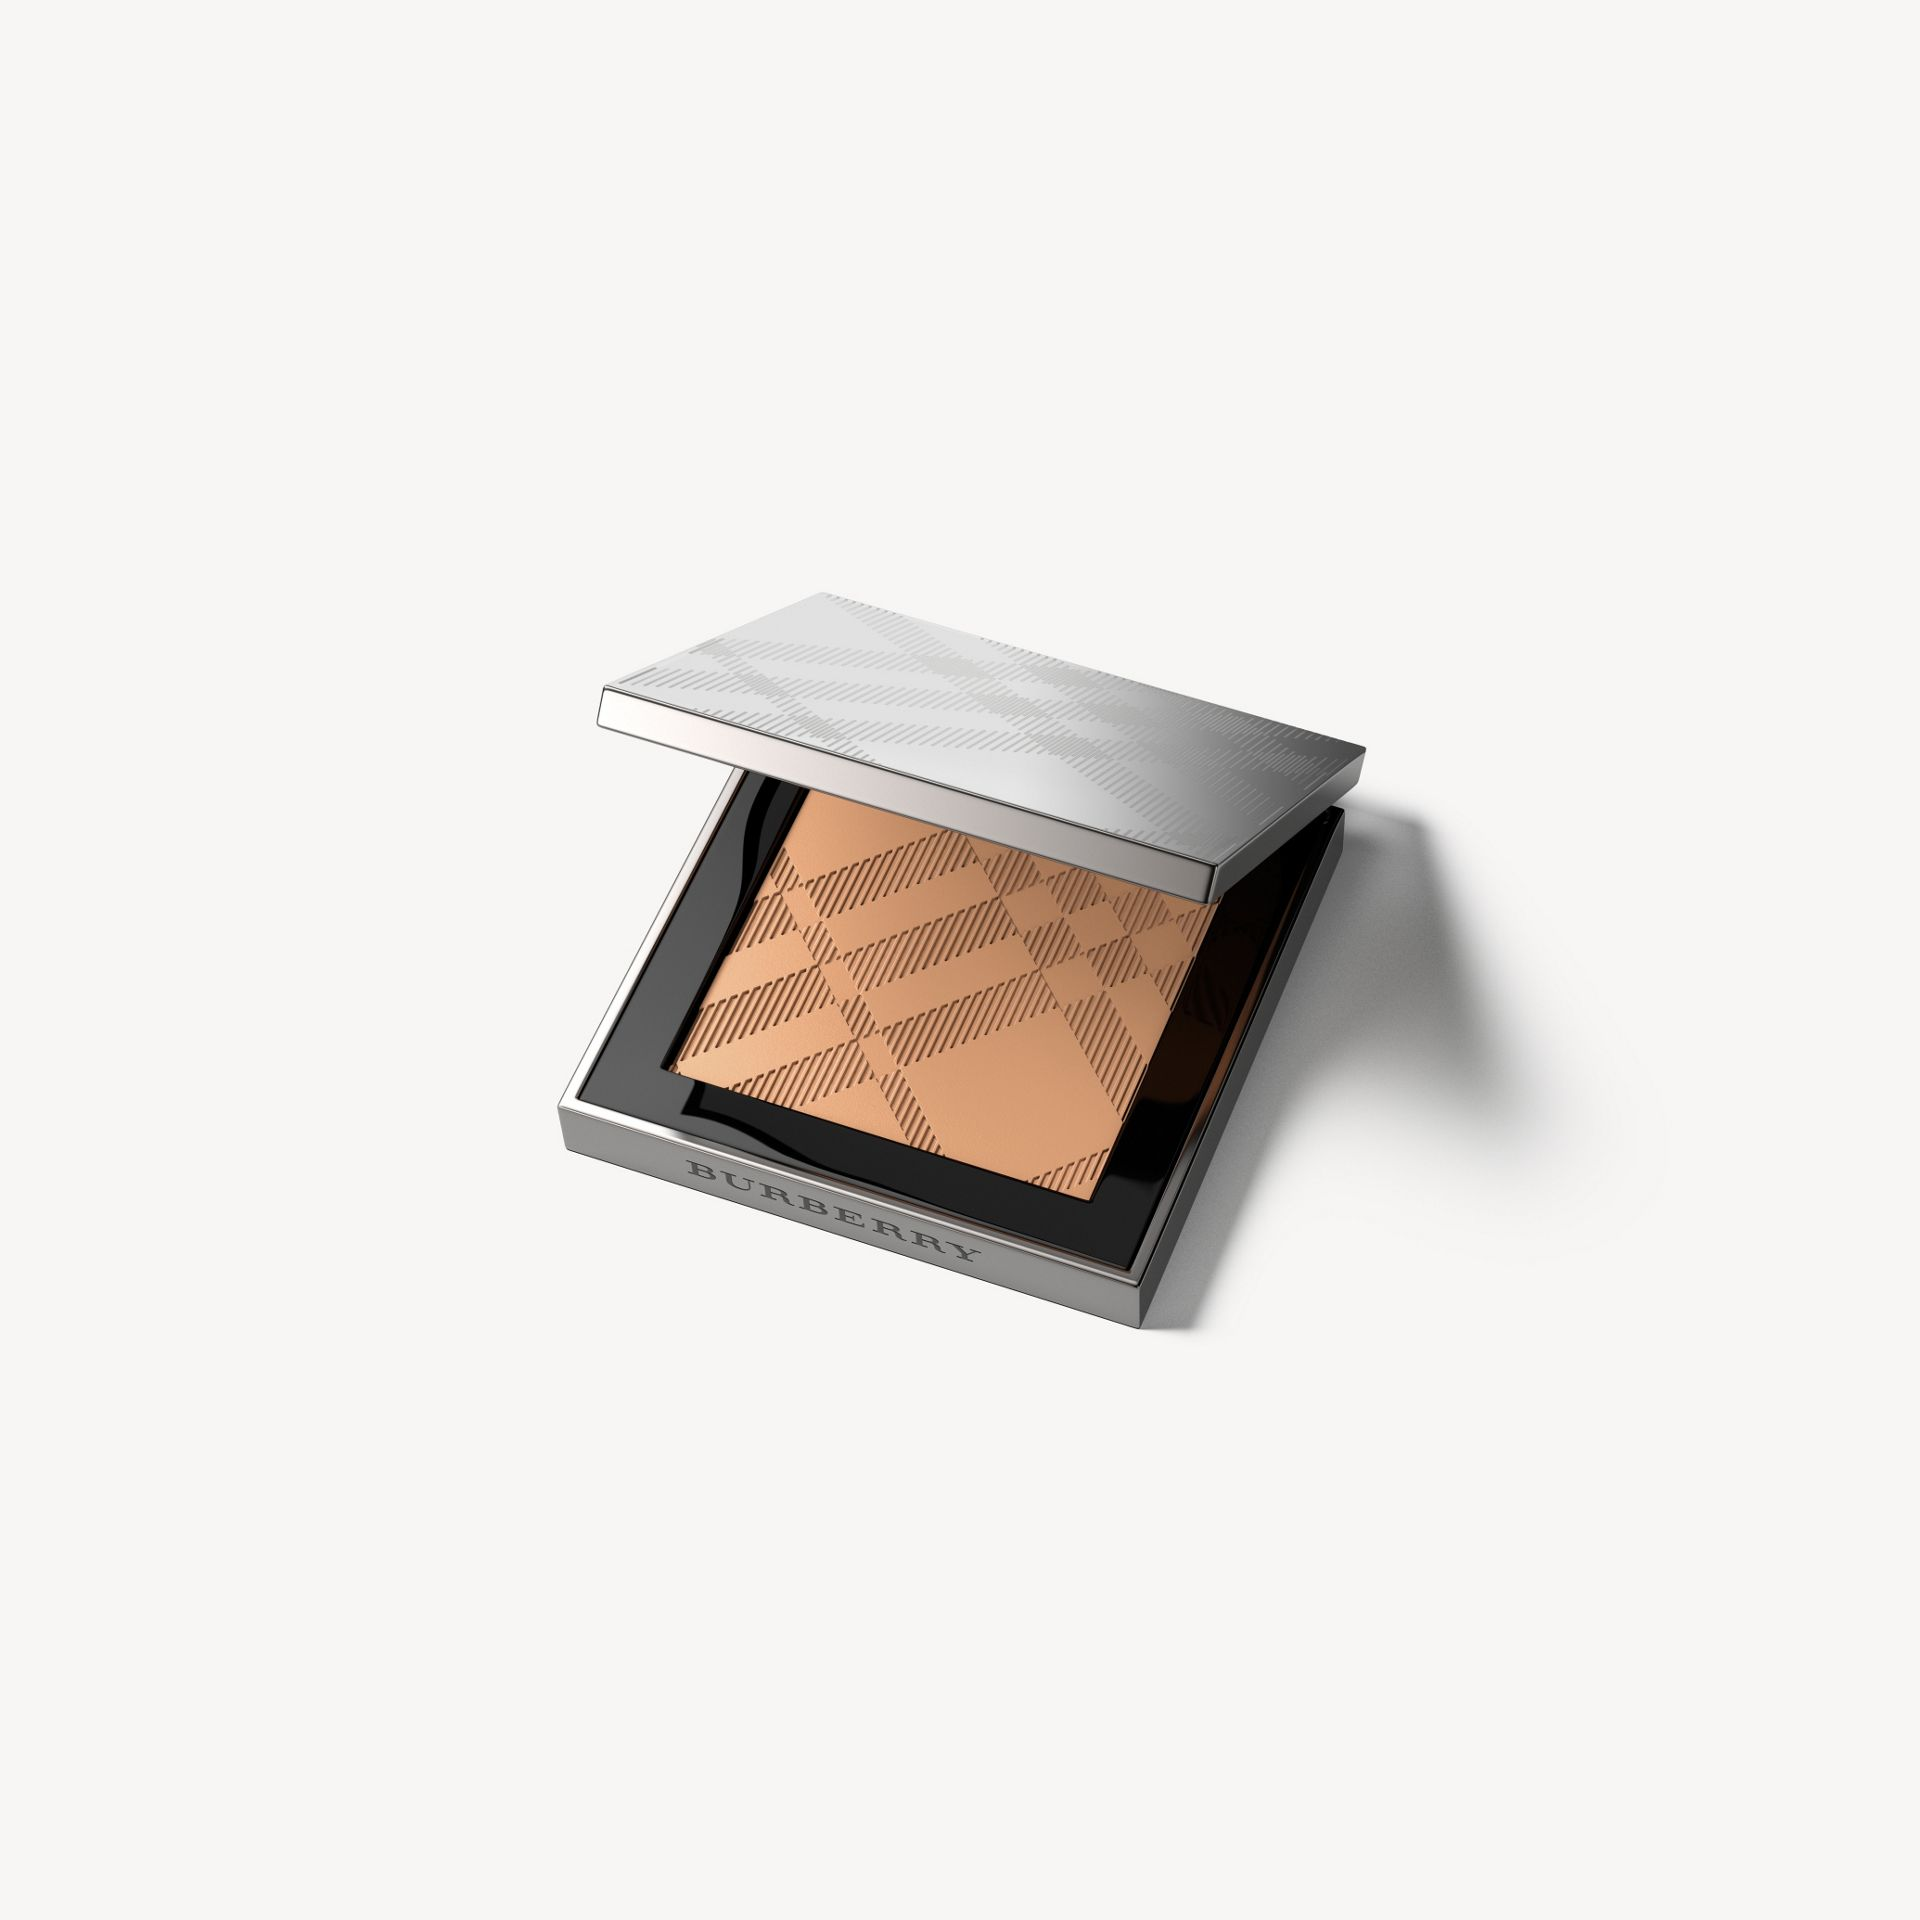 Warm honey 38 Nude Powder – Warm Honey N0.38 - gallery image 1